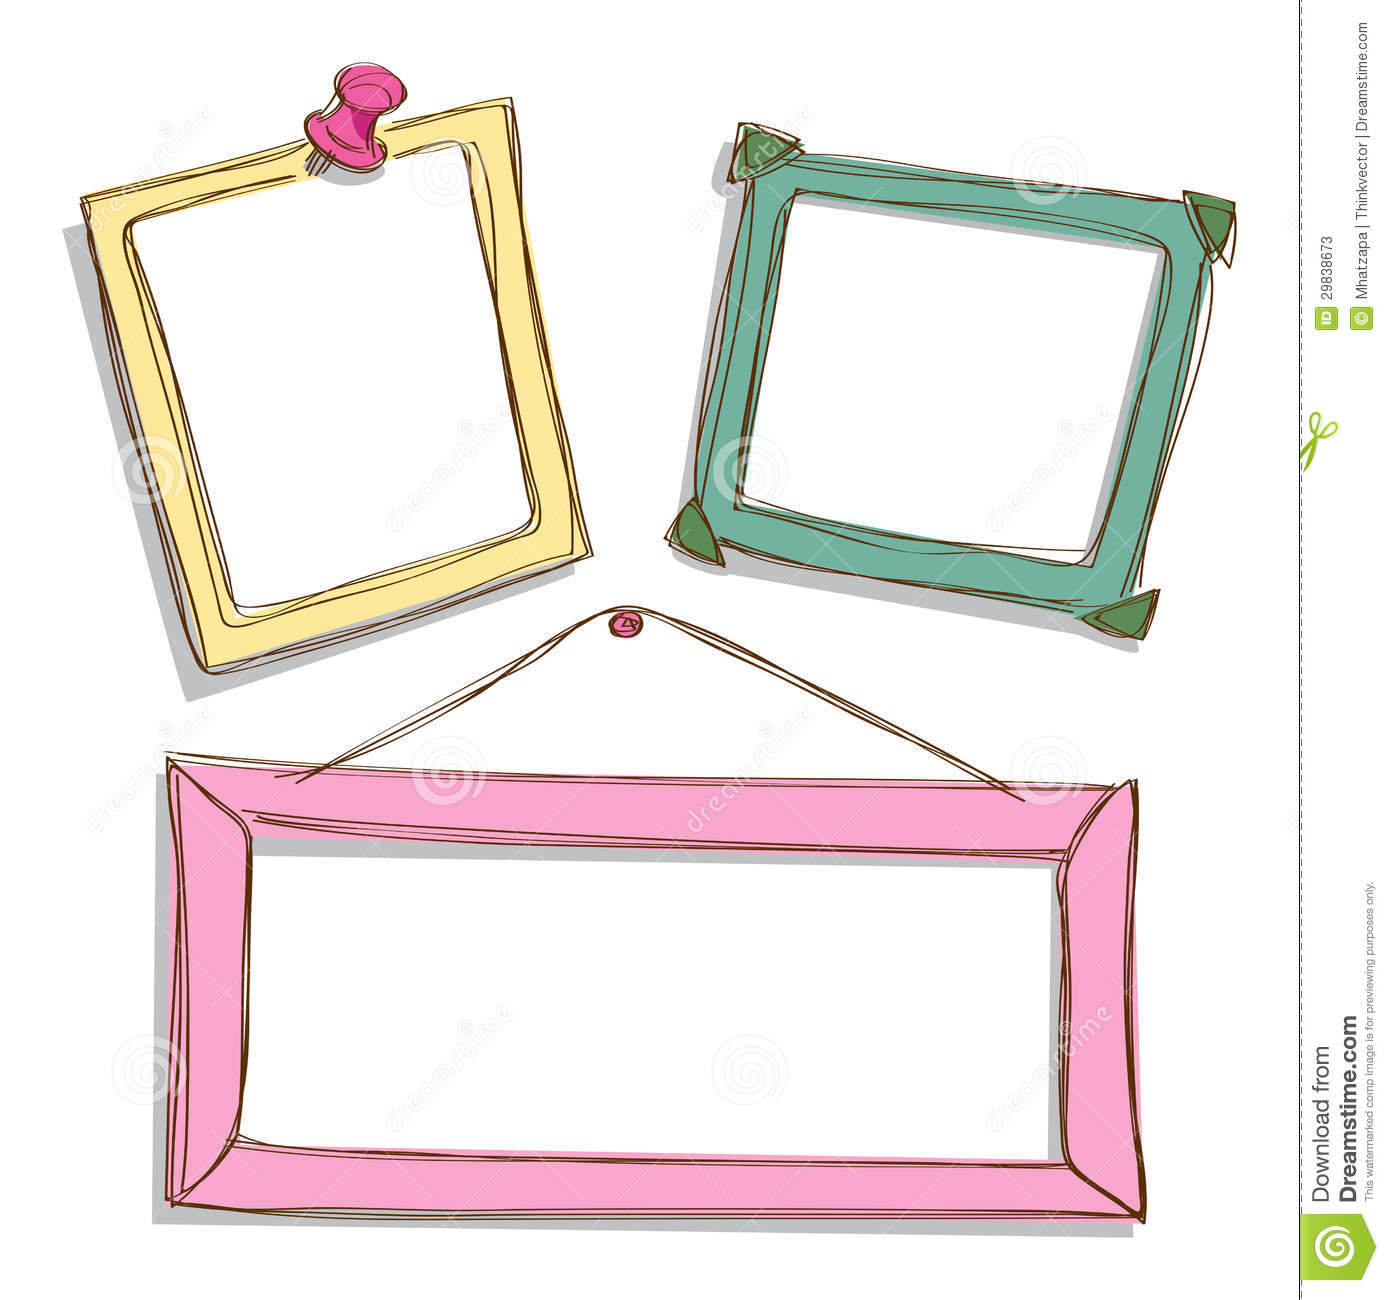 Cute Frame Doodle Stock Photos - Image: 29838673